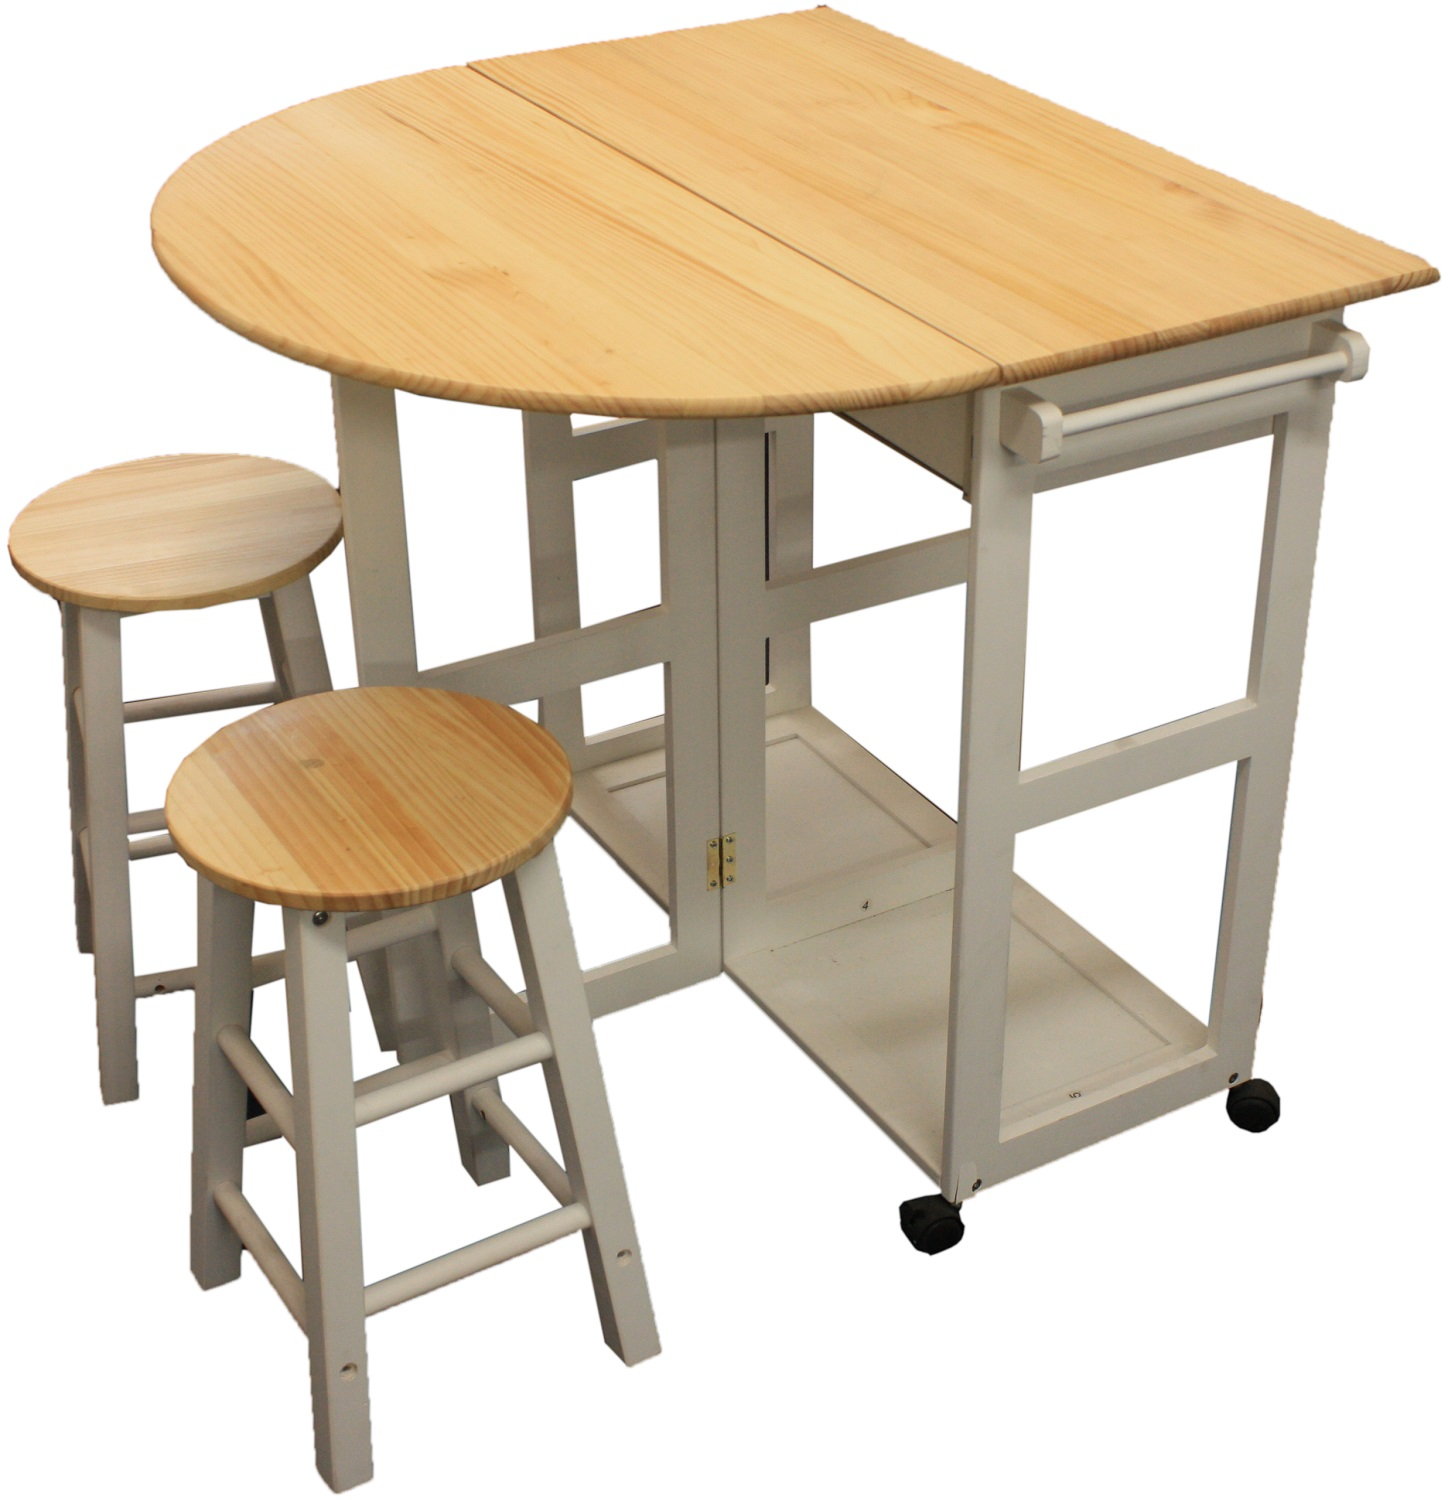 Maribelle folding table and stool set kitchen breakfast for Kitchen table and stools set